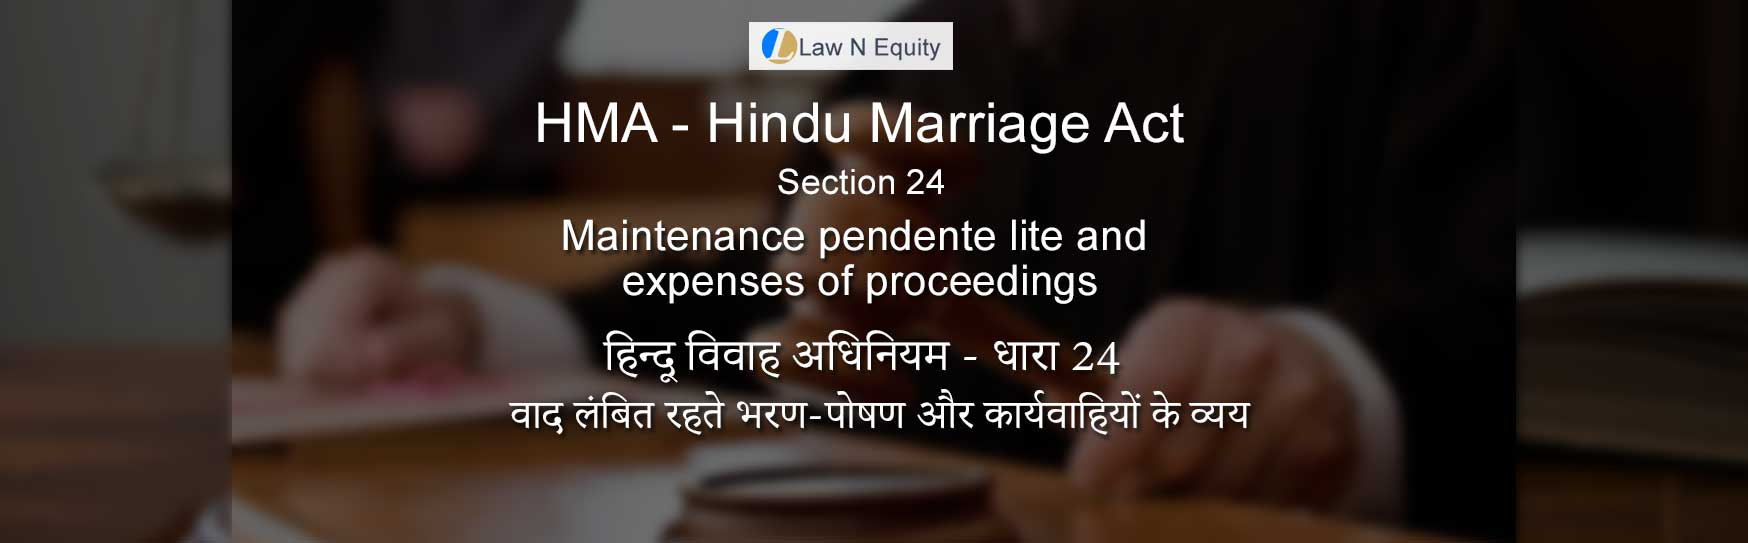 Hindu Marriage Act(HMA) Section 24